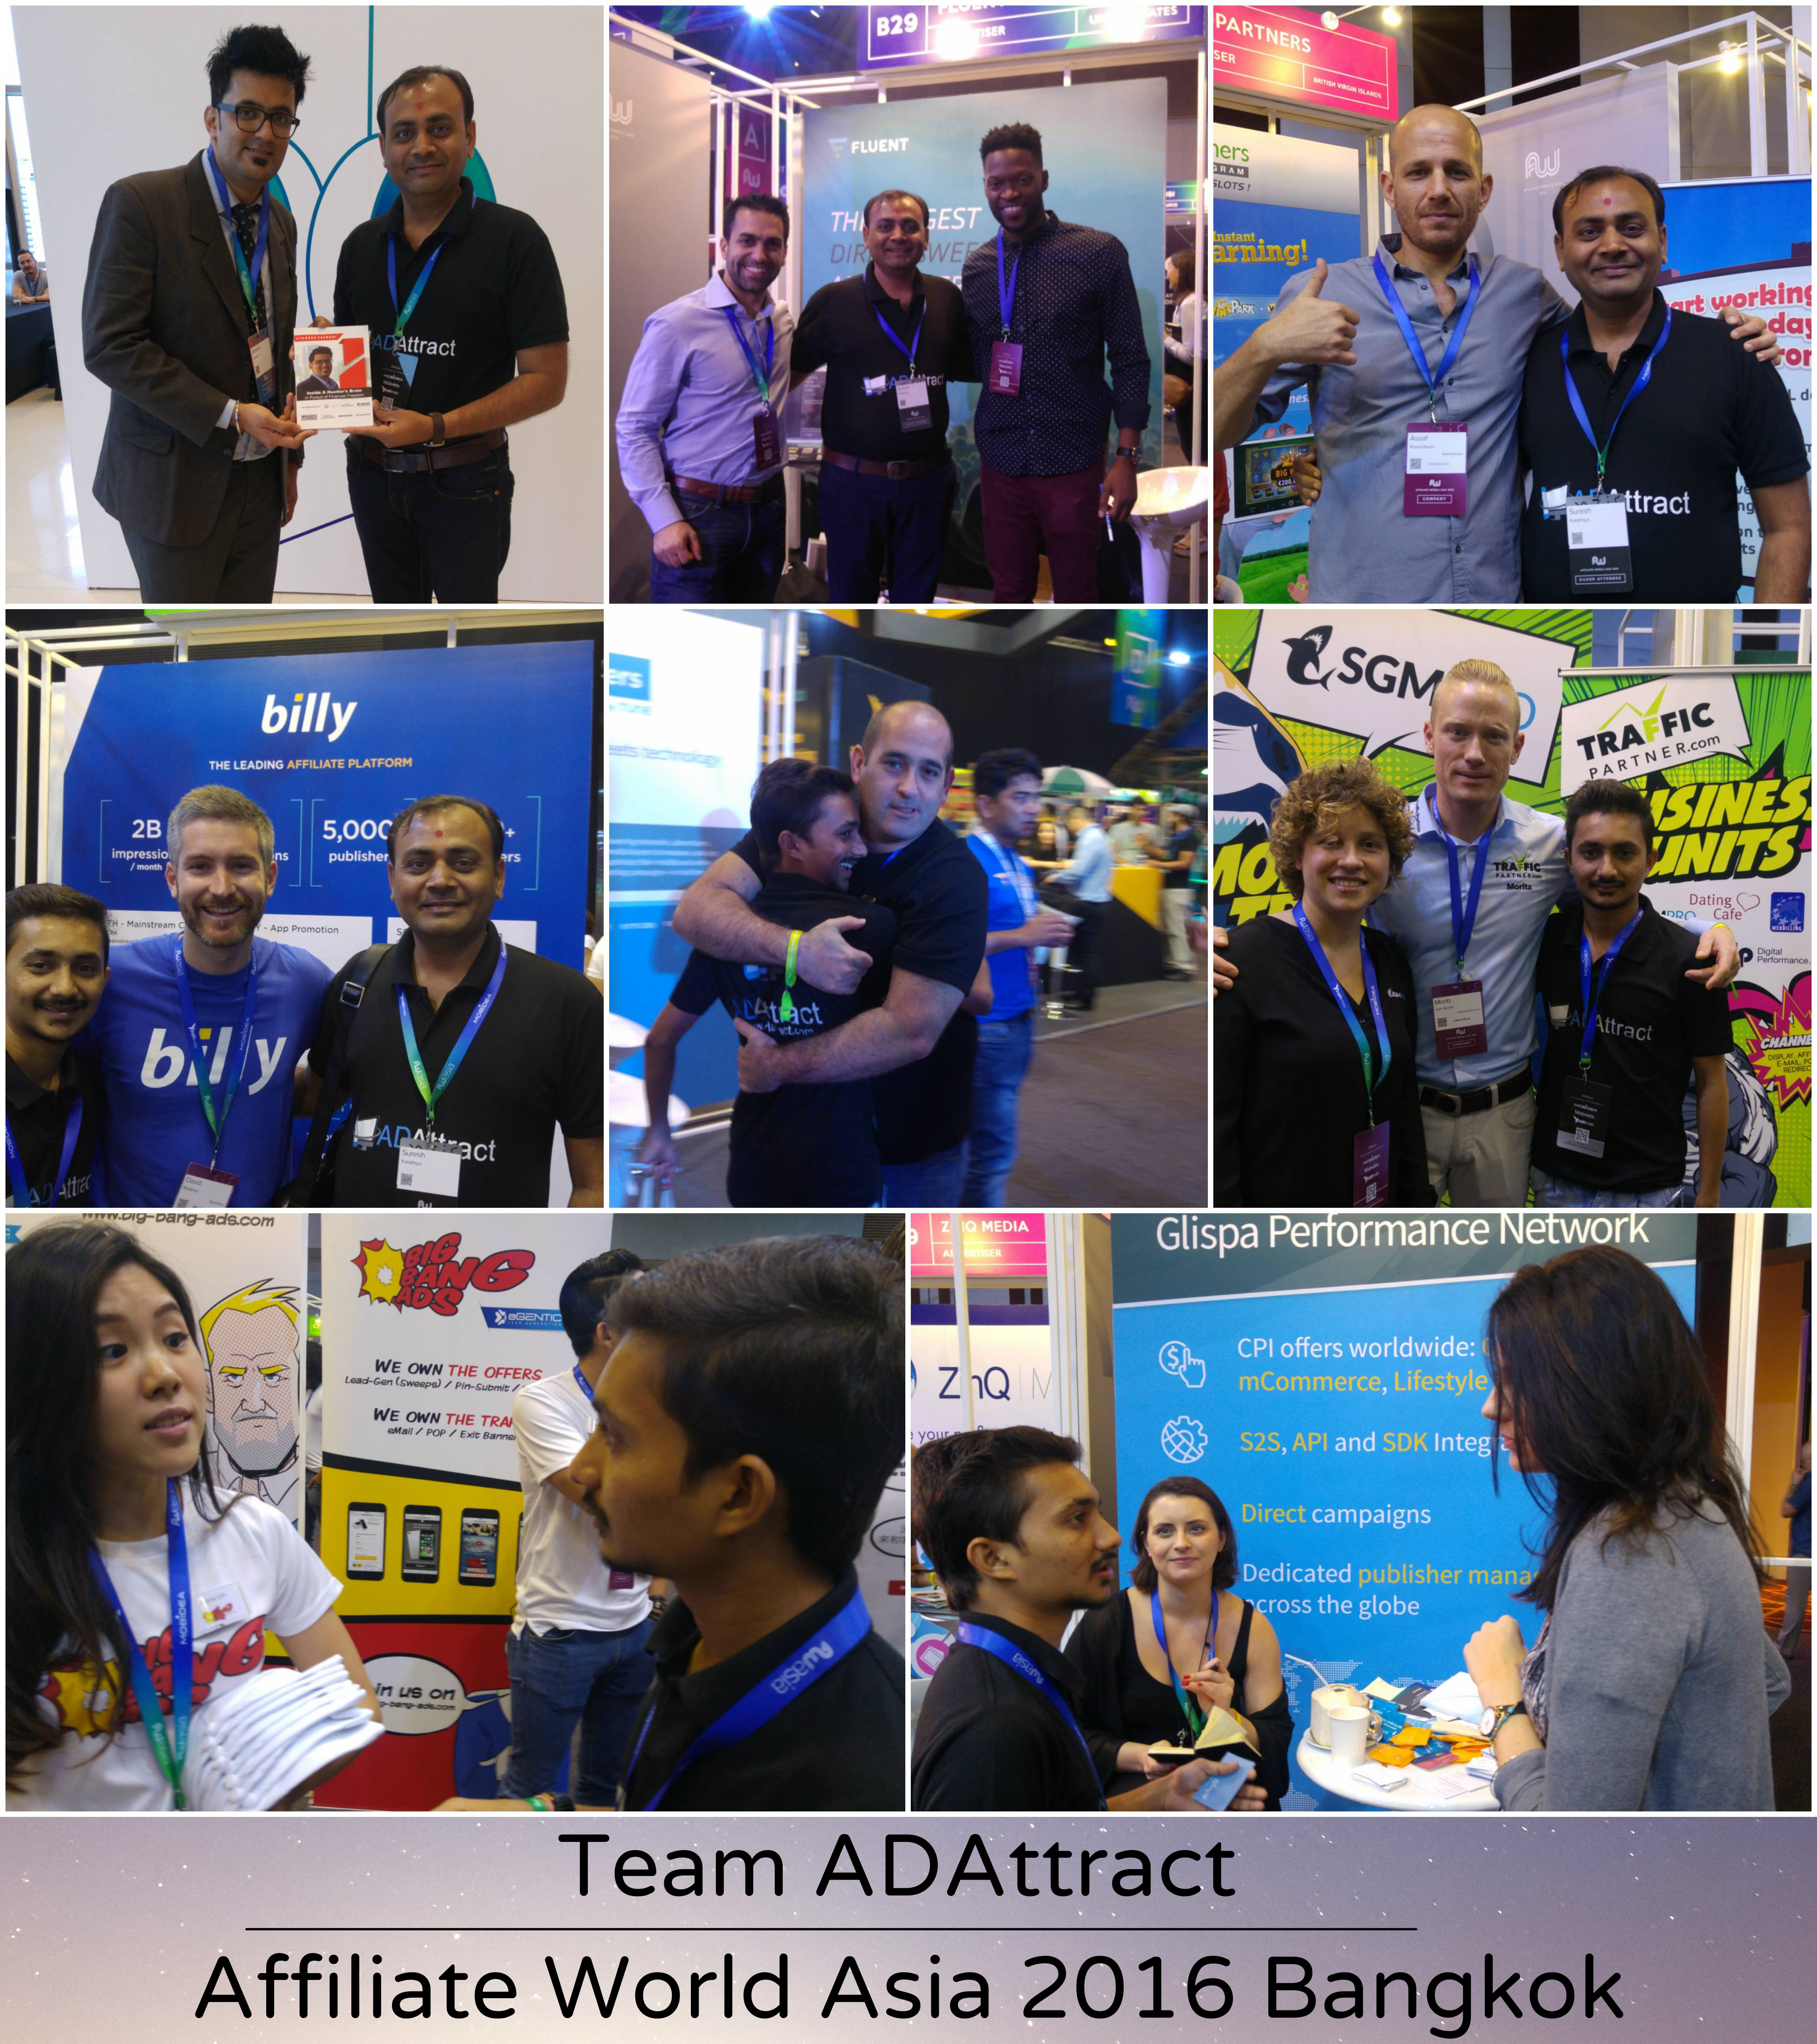 Team ADAttract at Affiliate World Asia 2016